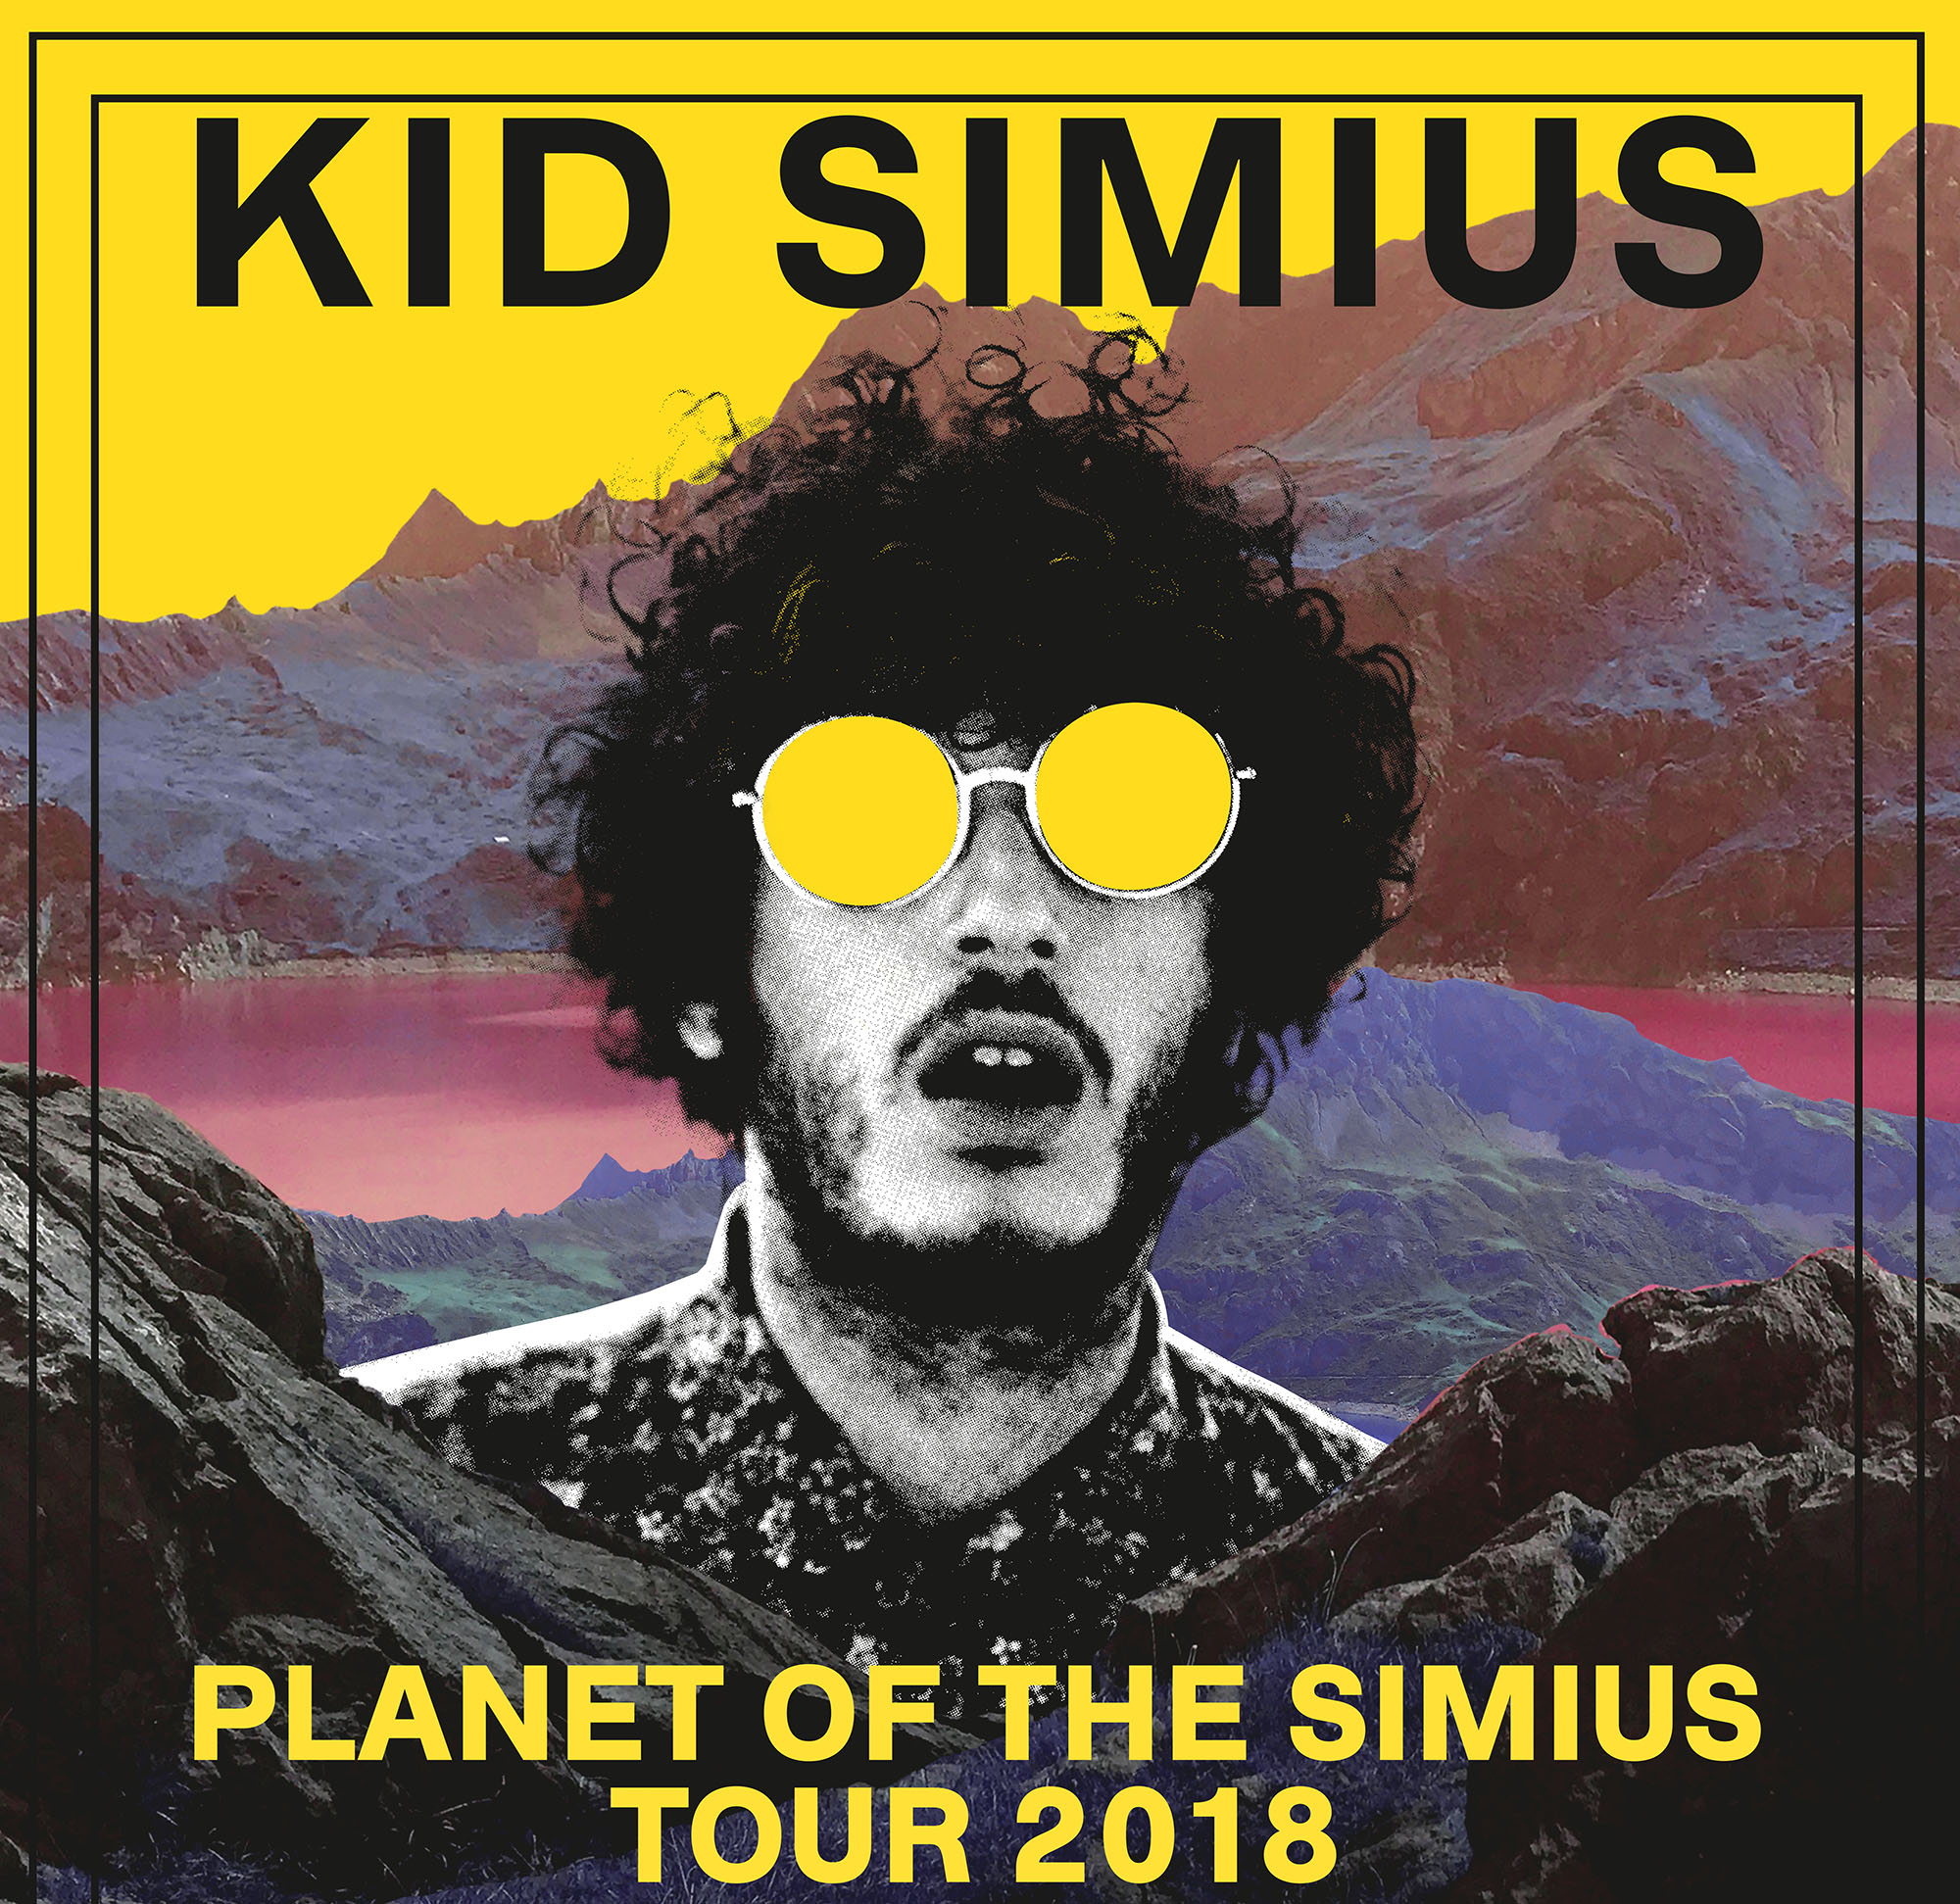 KID SIMIUS PLANET OF THE SIMIUS TOUR 2018